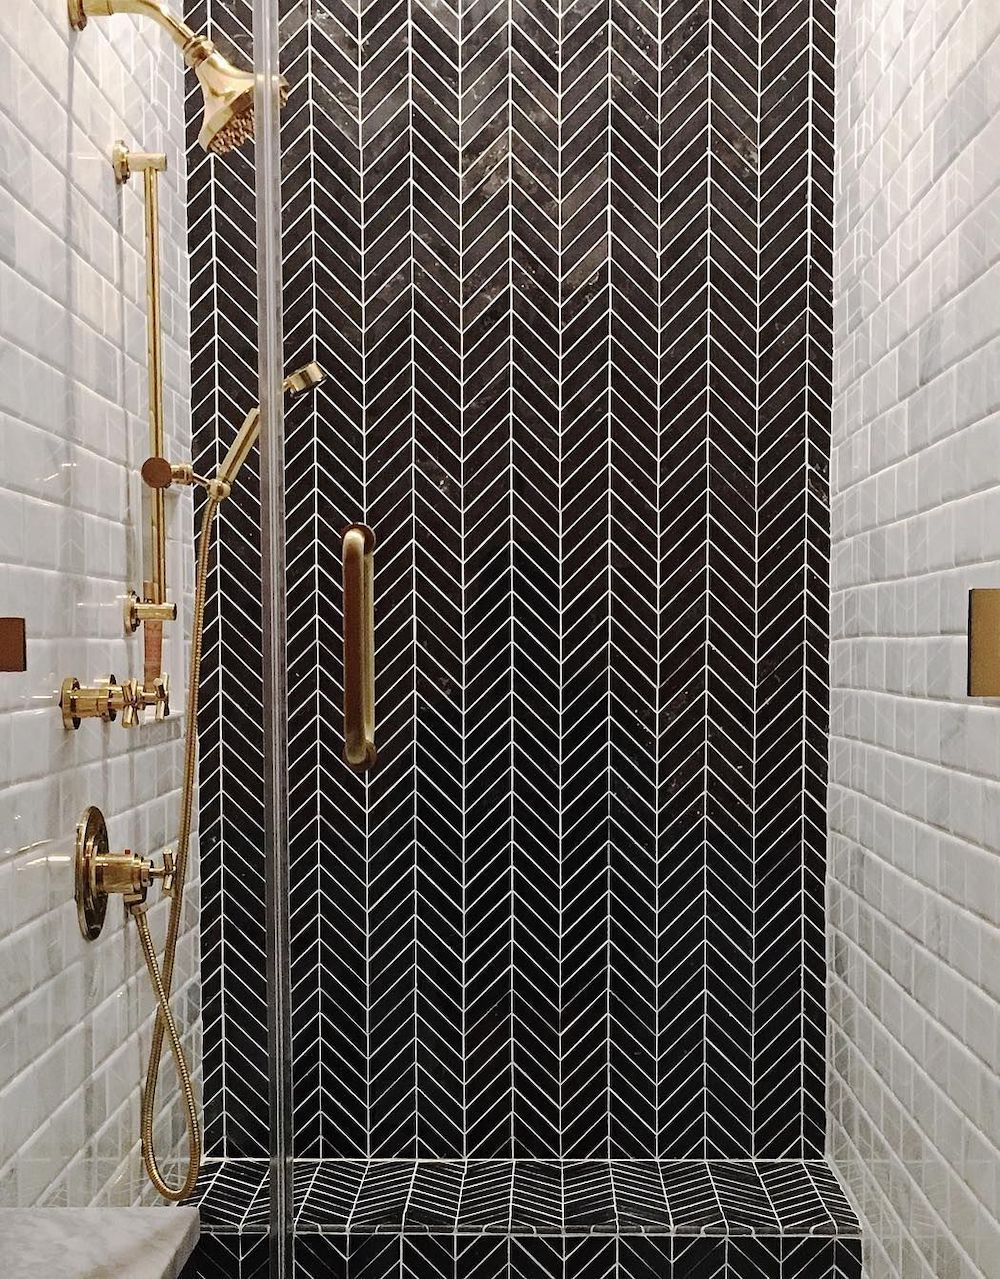 Bathrooms with Black Herringbone wall Tiles @jordansvaughn